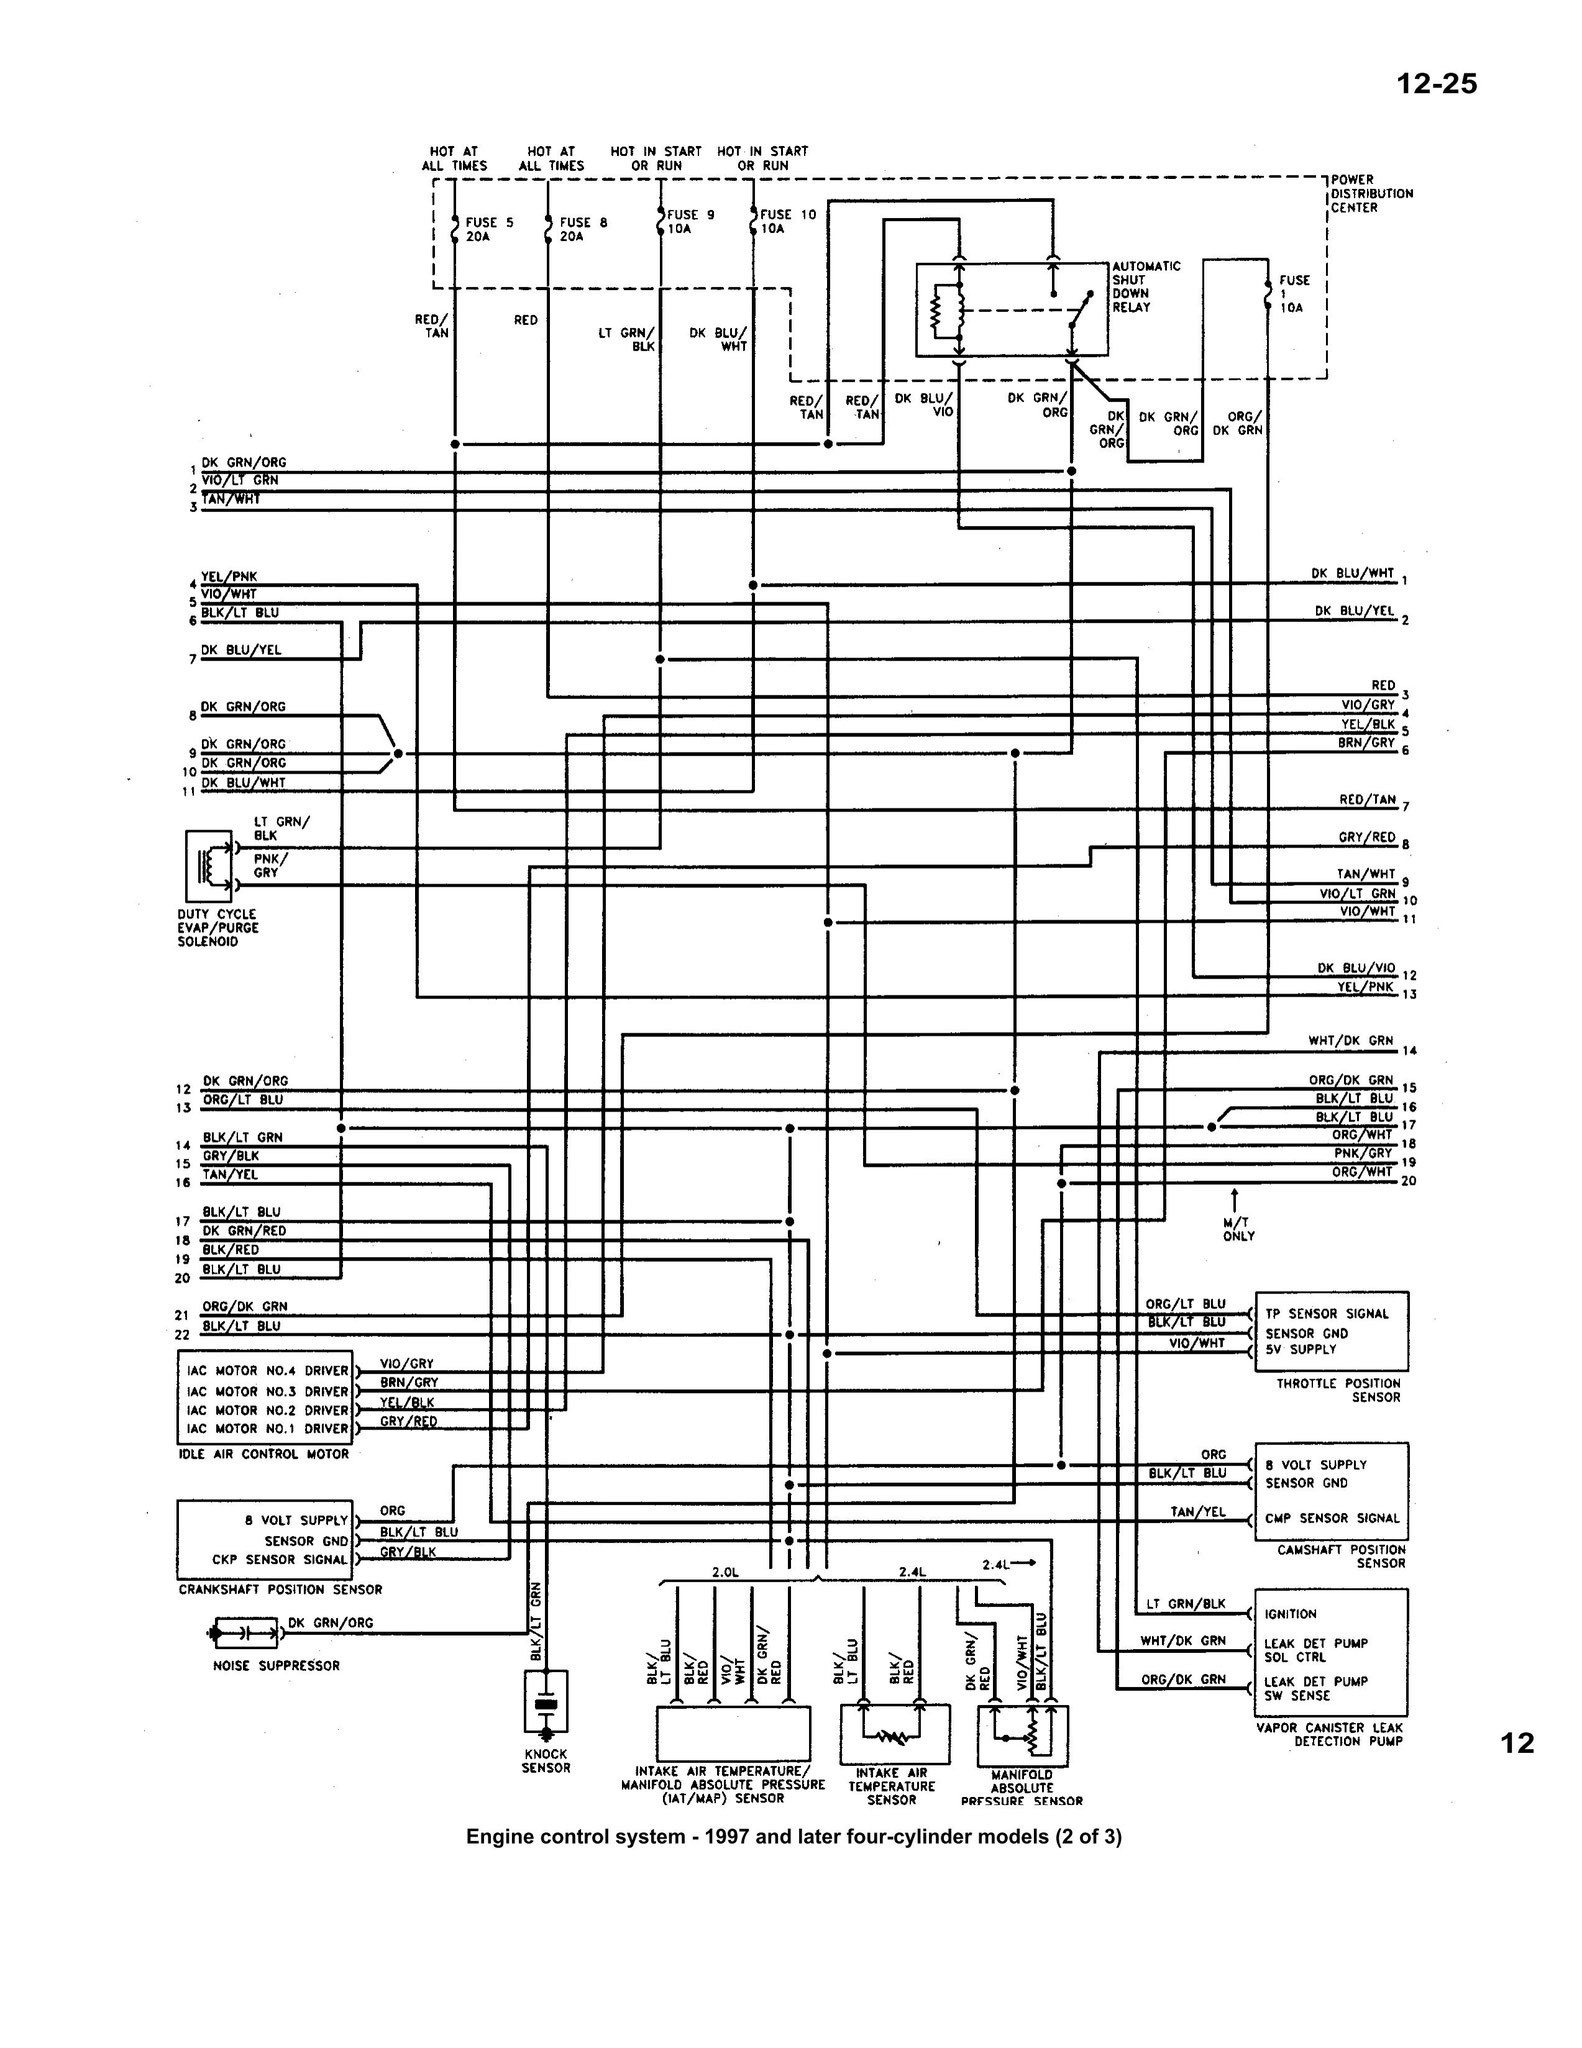 Chrysler - Wiring DiagramsAutomotive manuals - Wiring Diagrams